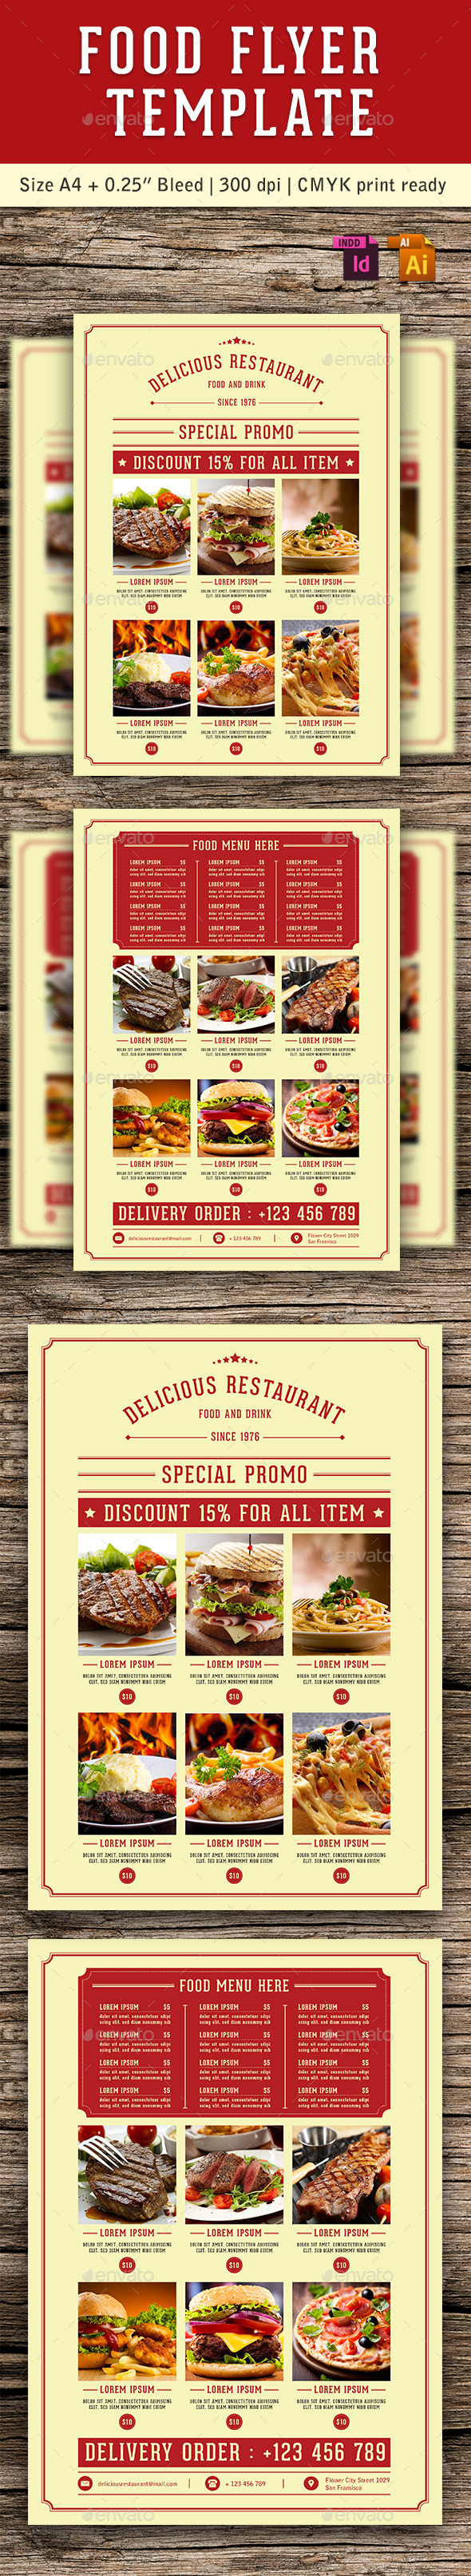 Food Flyer Template Vol. 5 - Restaurant Flyers